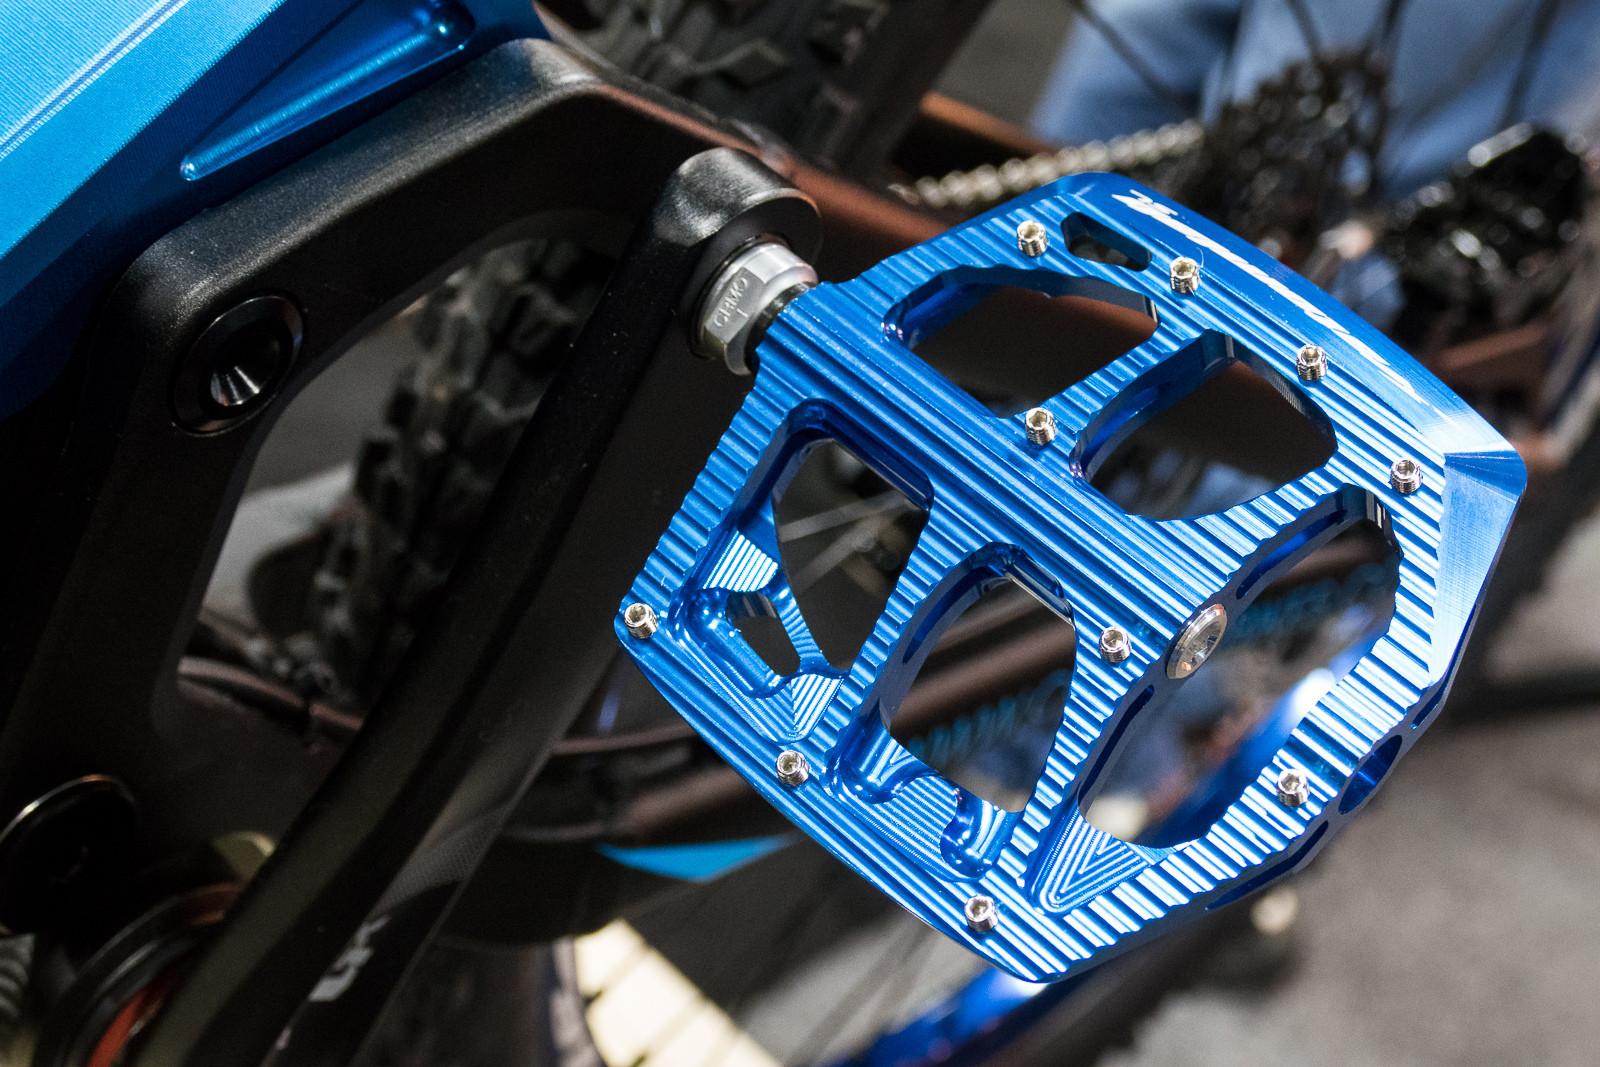 Atomlab SL Pedal - 2016 Bike Components at Interbike - Mountain Biking Pictures - Vital MTB